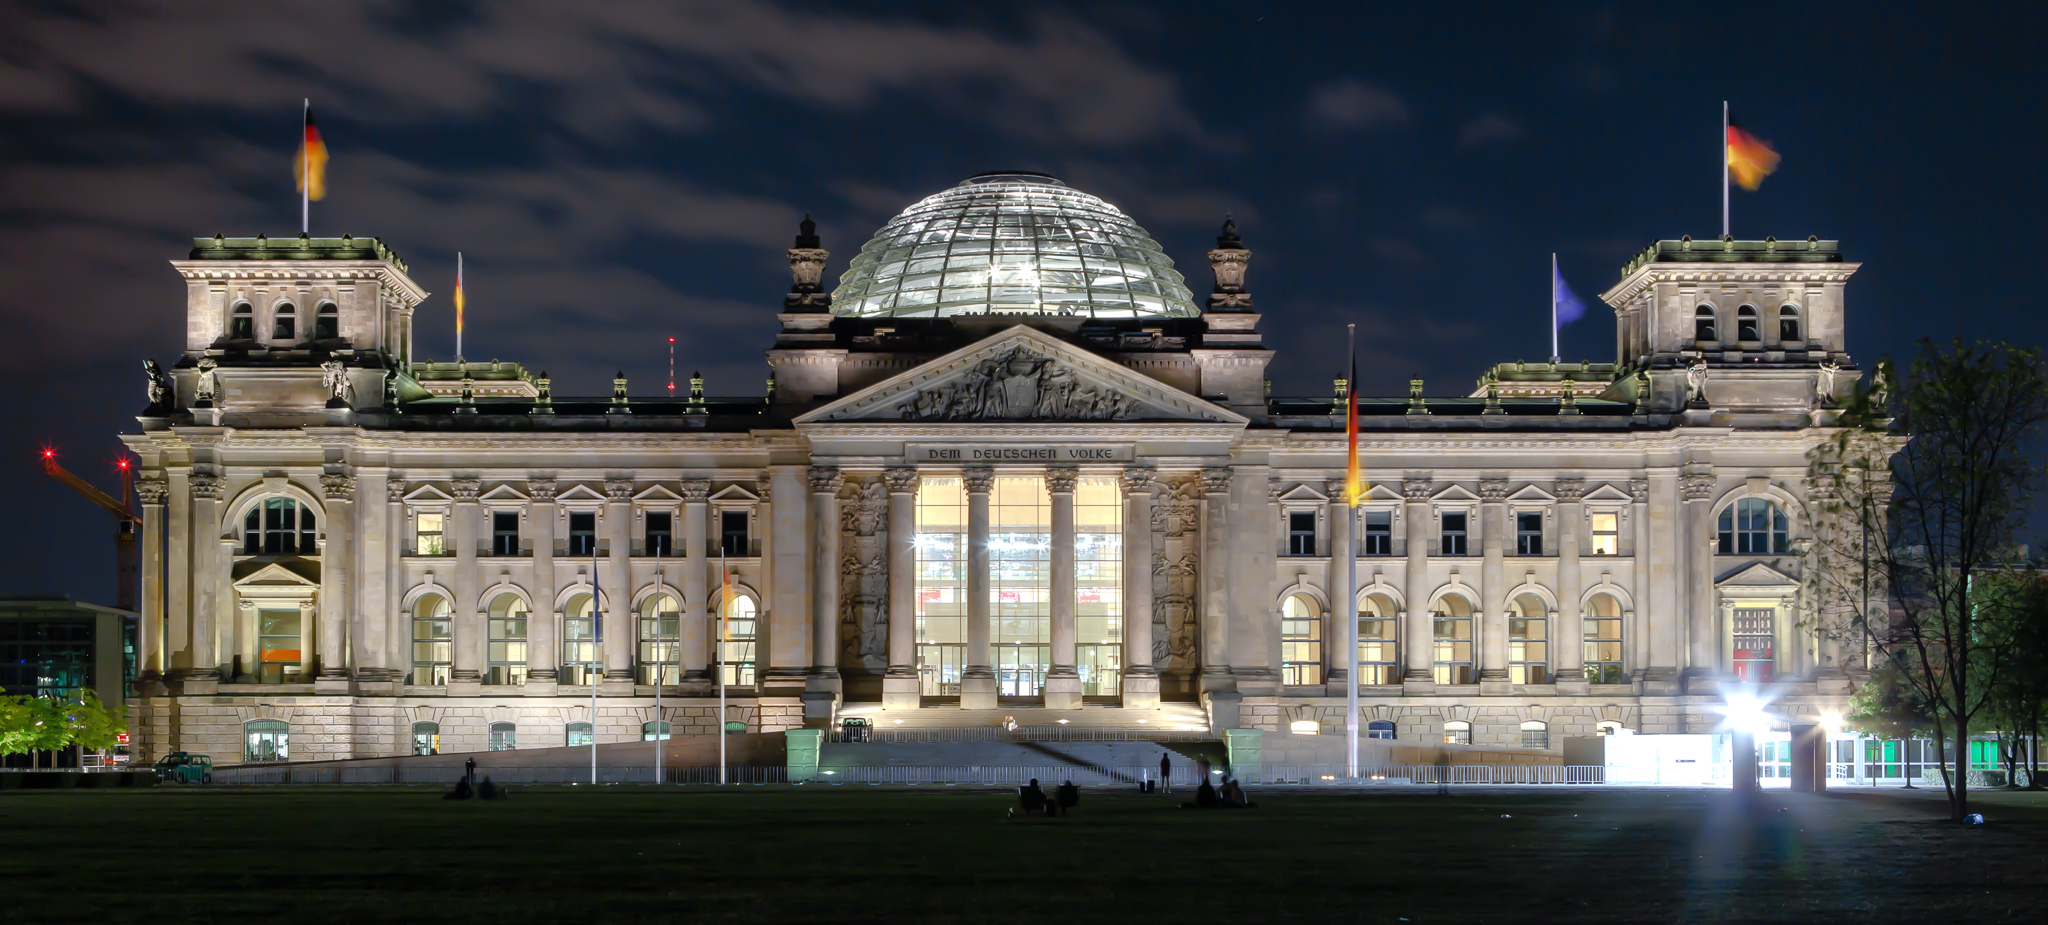 berlin_reichstag_building_at_night_2013.jpg